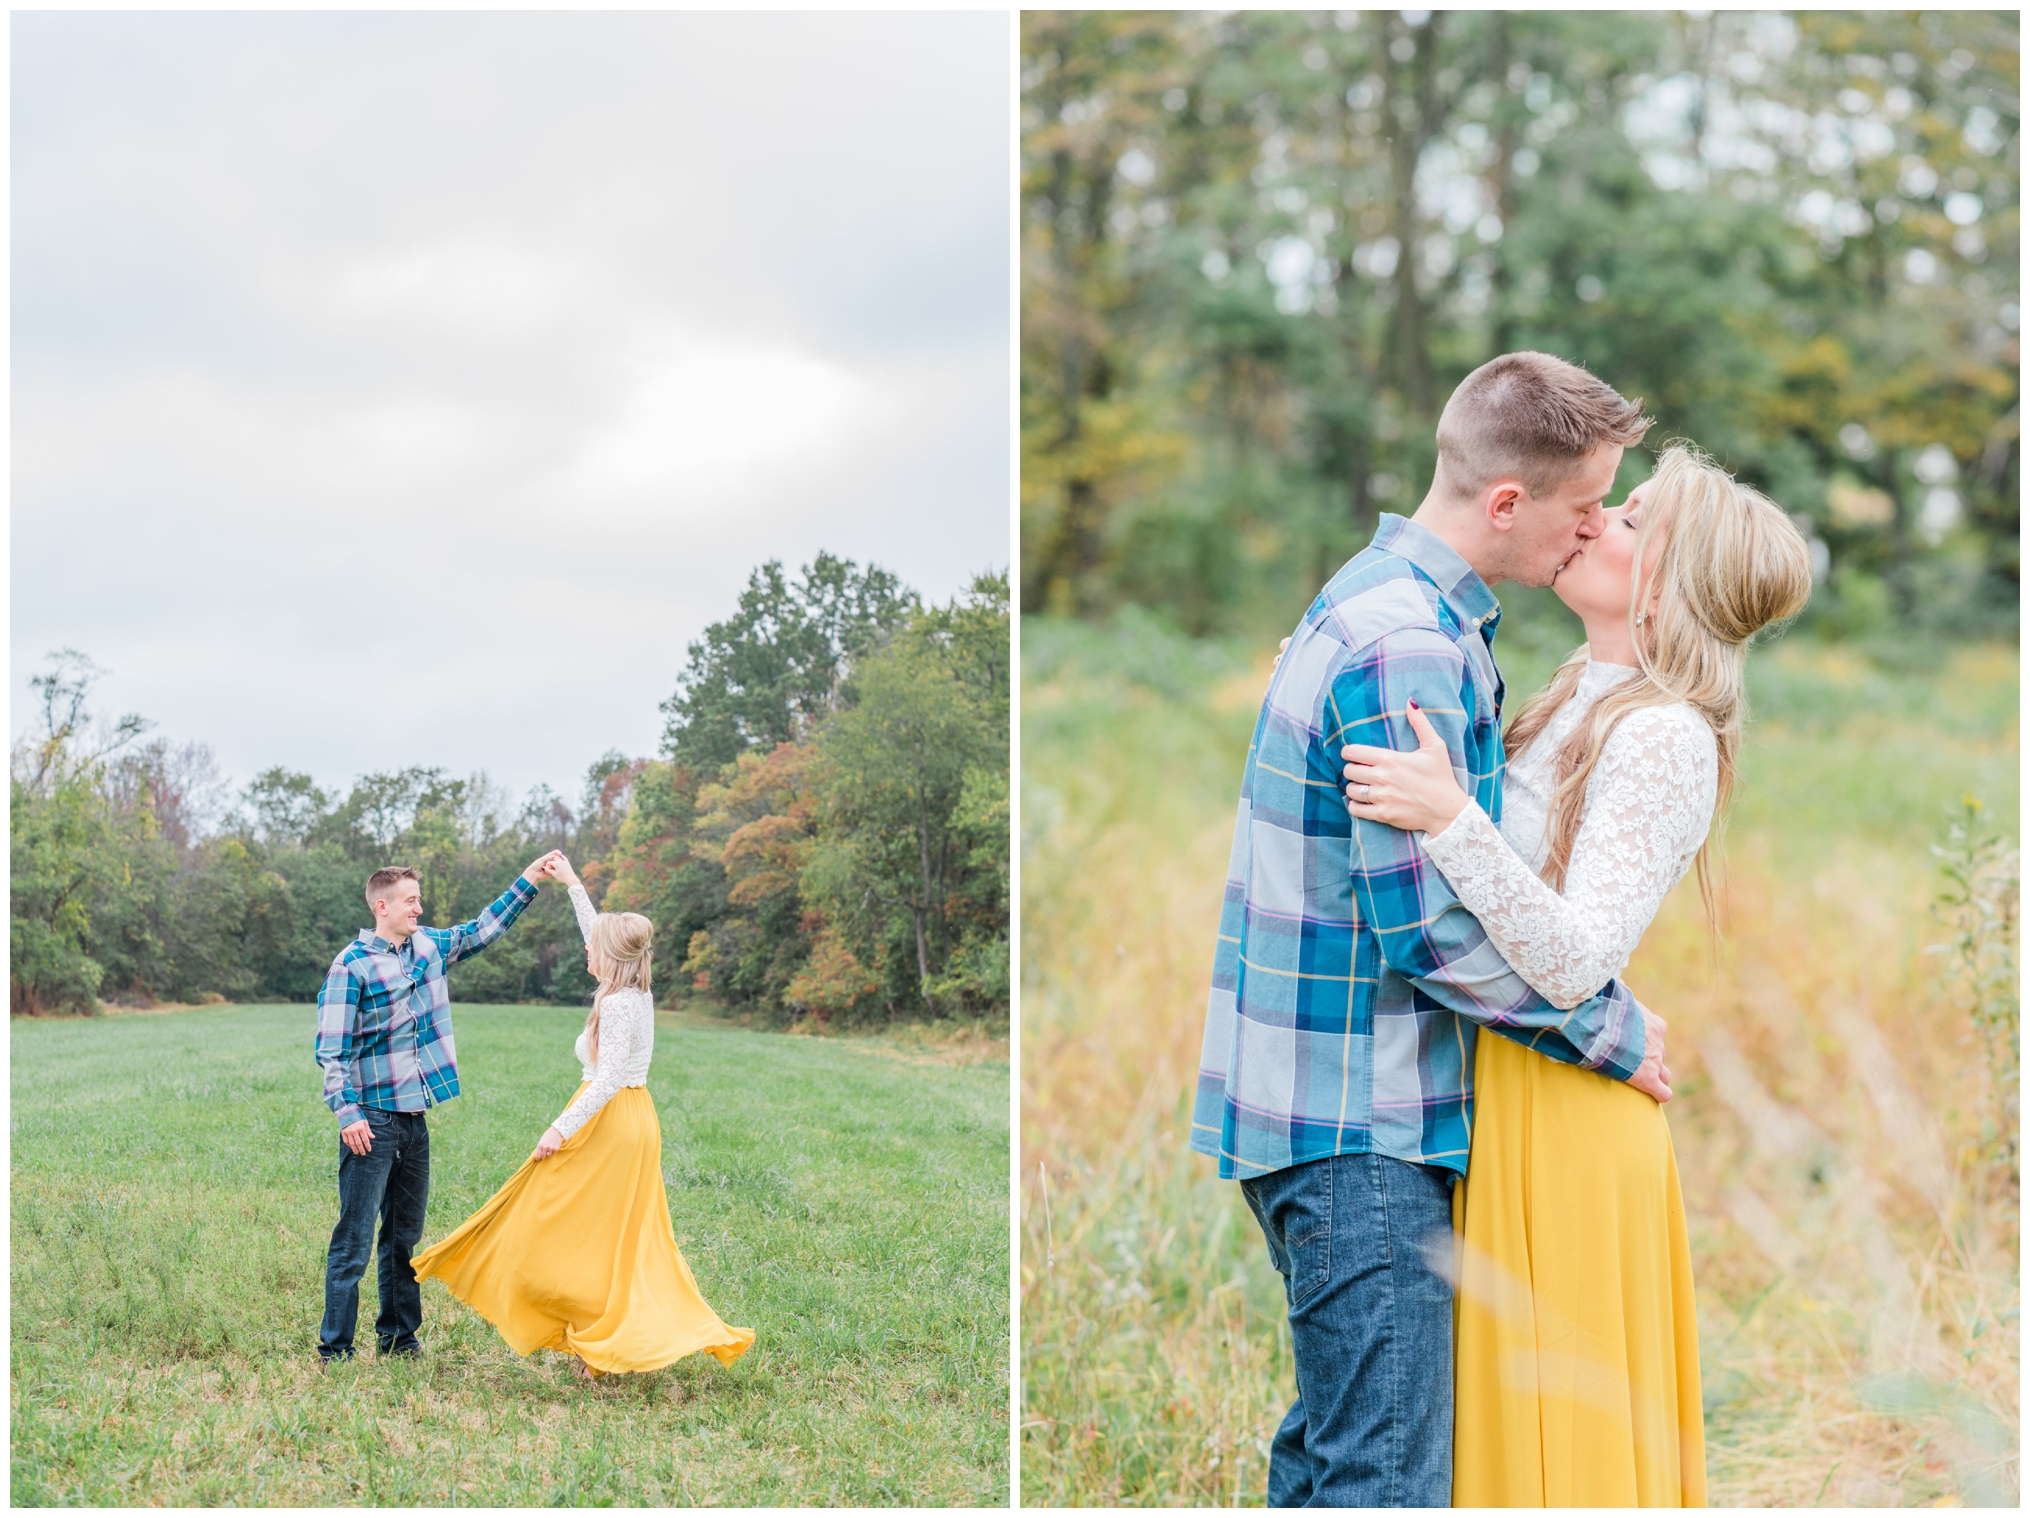 Fall Engagement Session Collegeville, PA - Krista Brackin Photography_0017.jpg